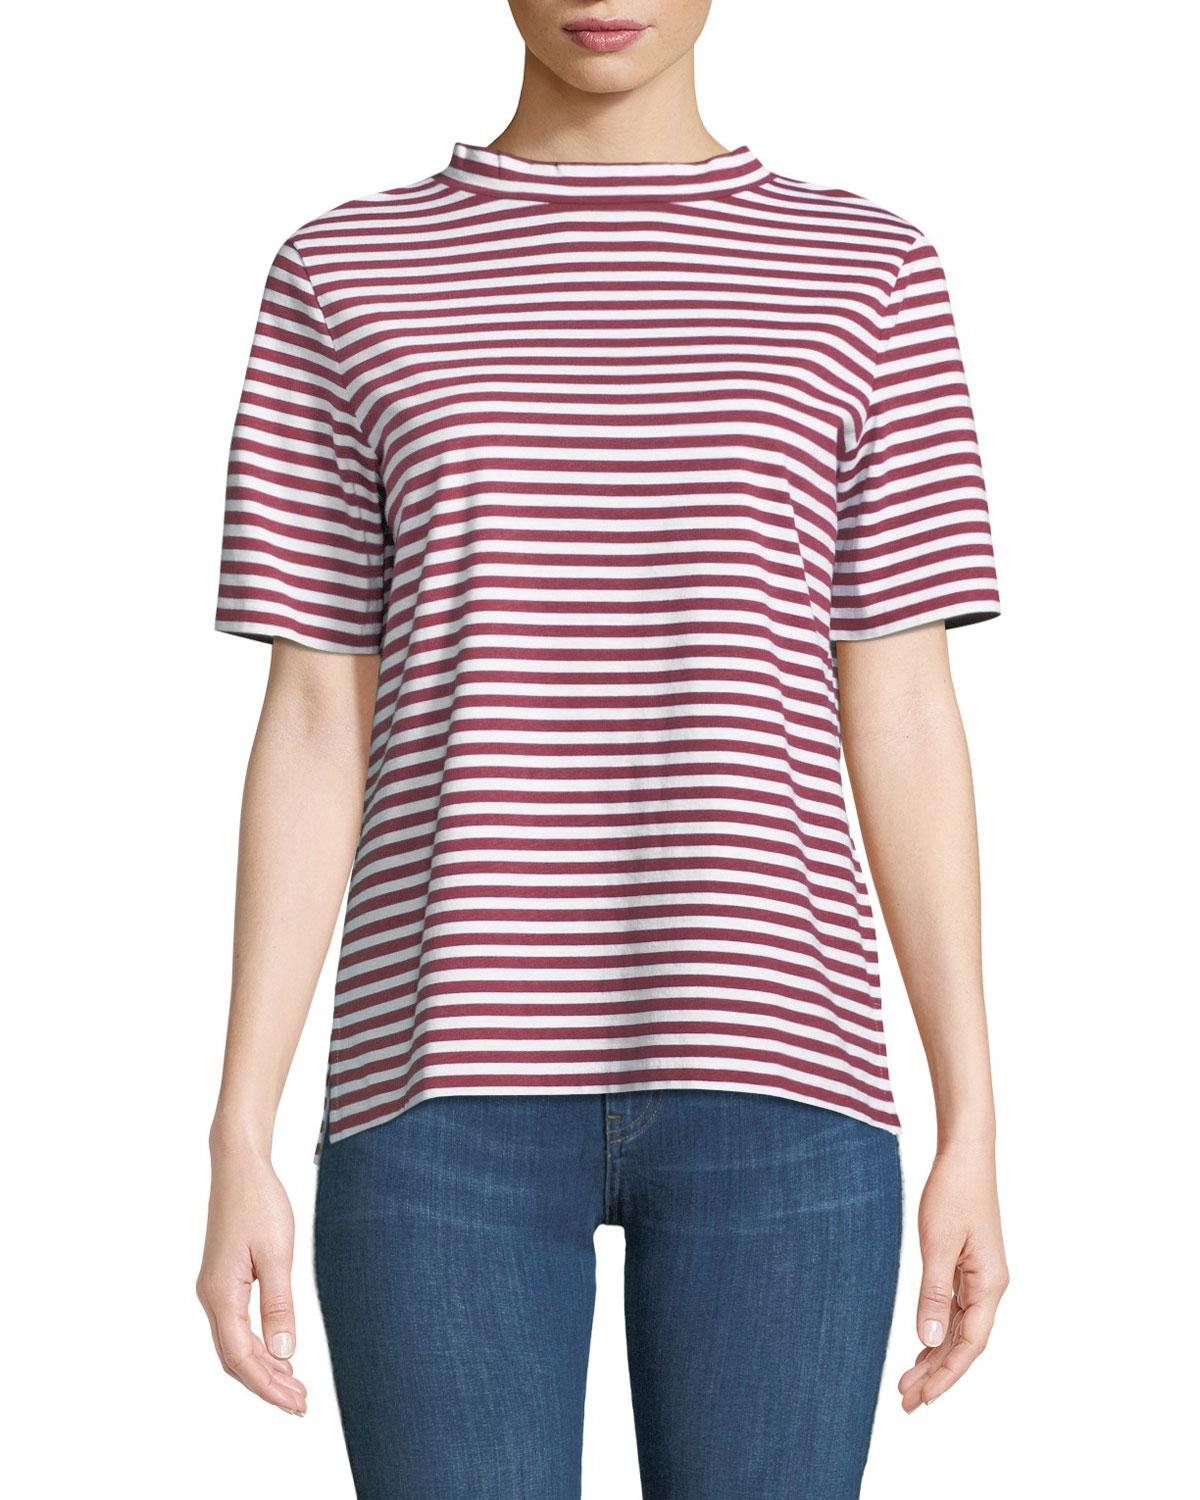 Penny striped T-shirt - Red Mih Jeans Cheap Sale Really For Sale Wholesale Price hmF6A1HoI